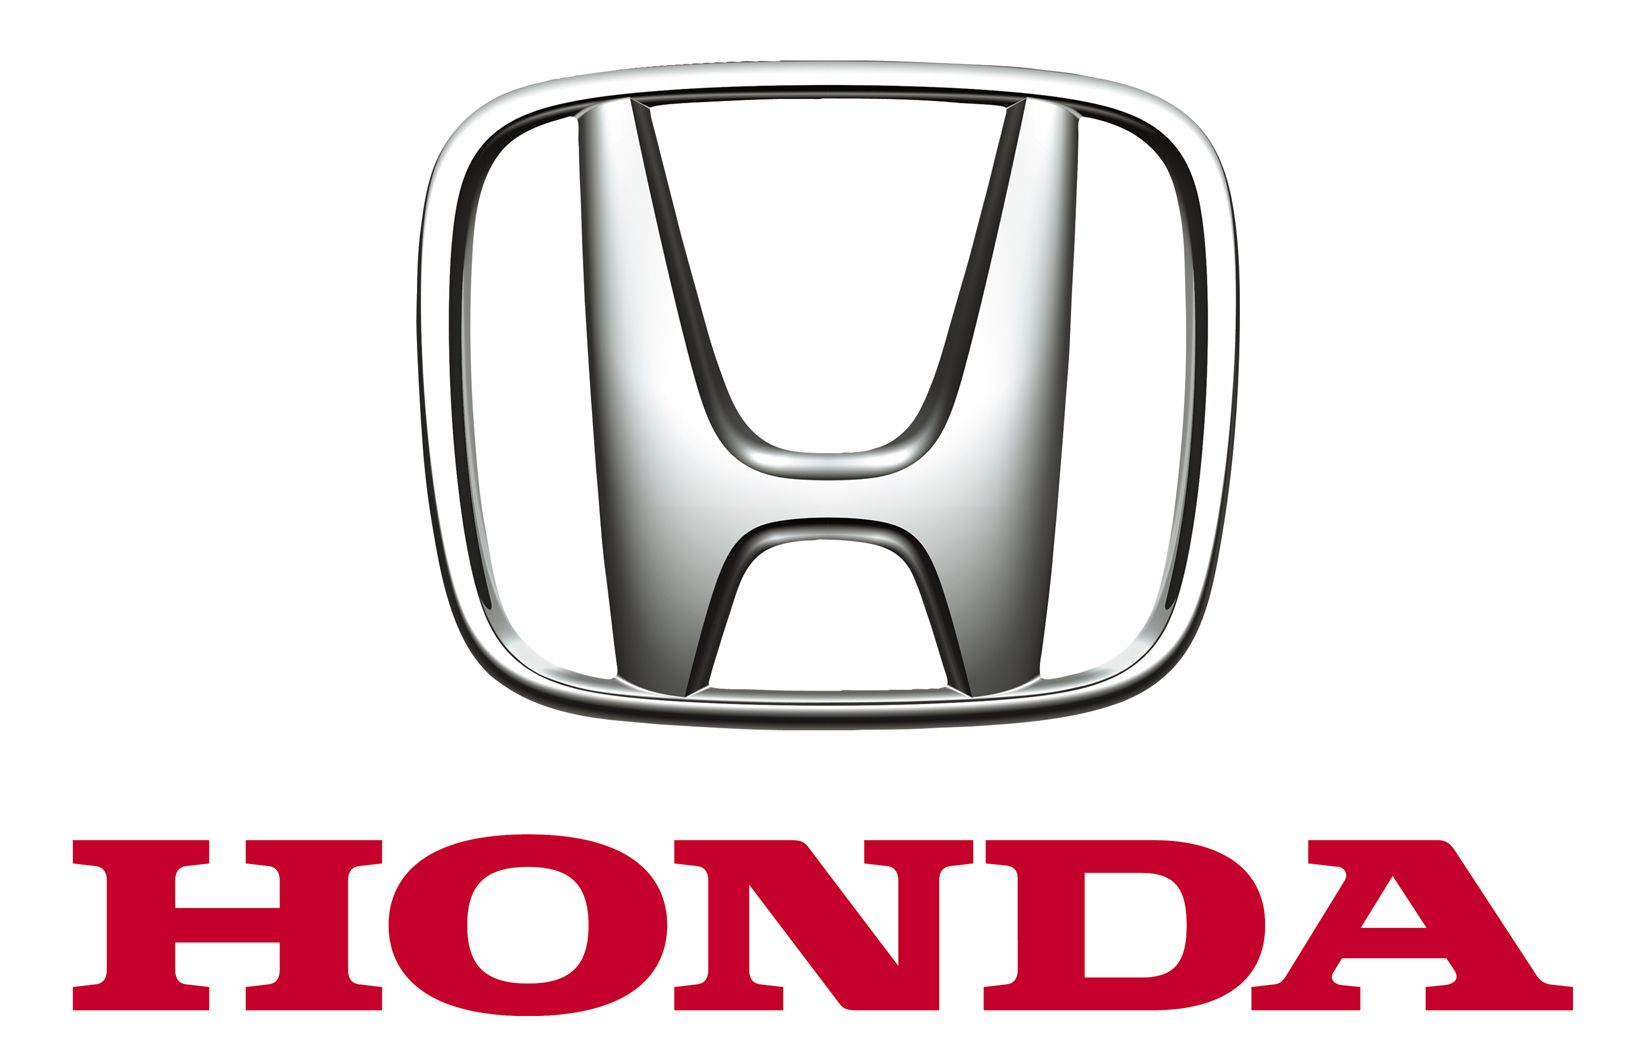 The Official Logo Of Car Company Honda A Pyramid With Capstone Removed And Beam Light Exiting Top HONDA WHY PYRAMIDS CONNECTTHEDOTS TRUTH